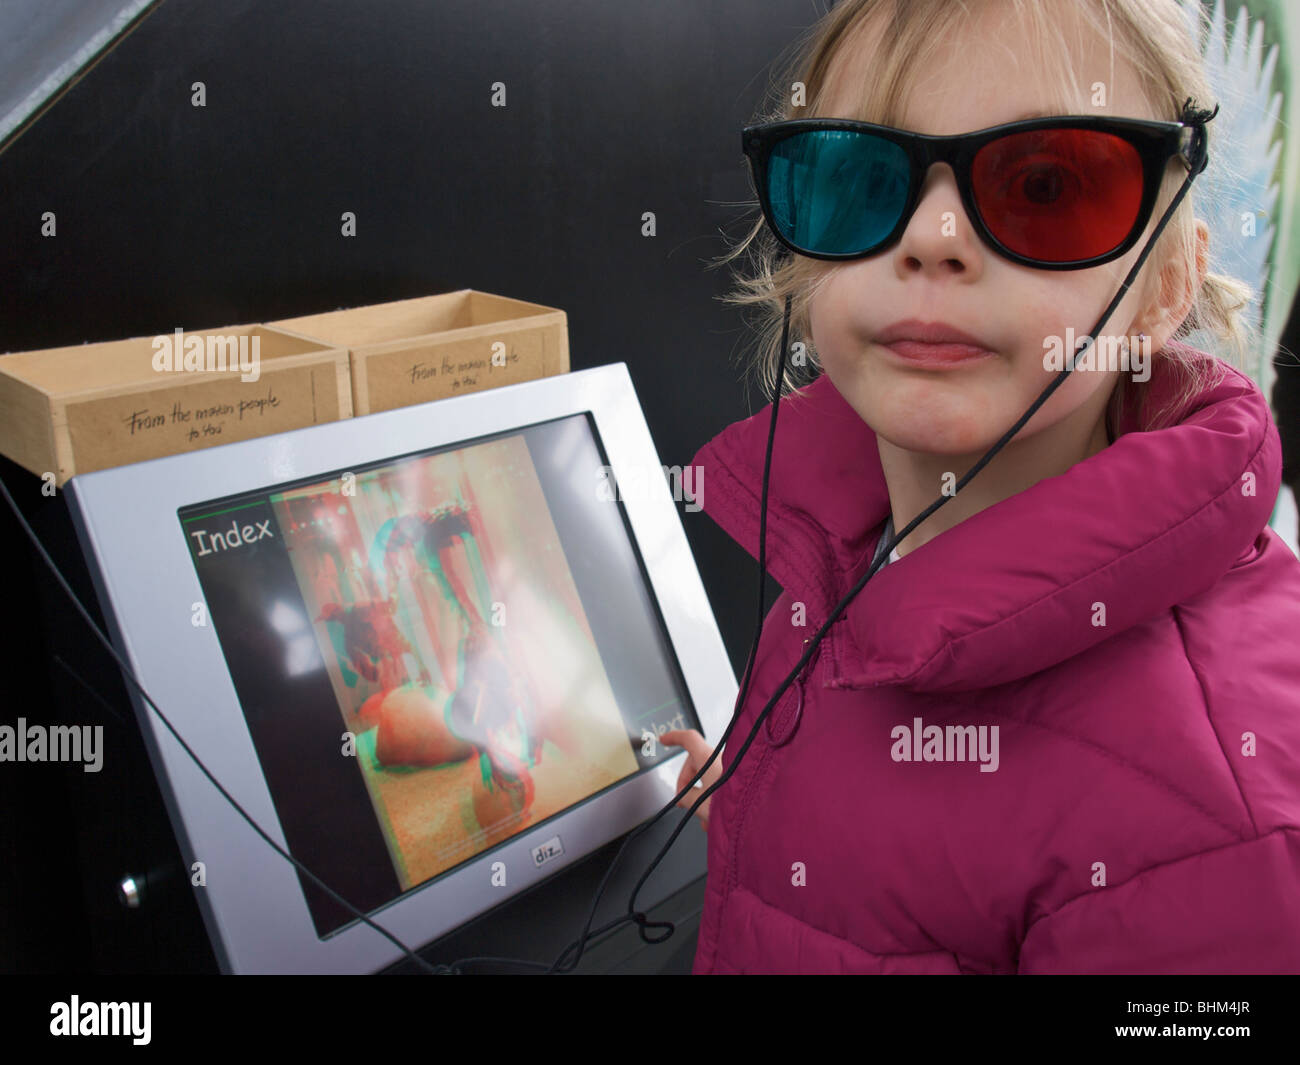 f930592ee30e Girl 5 years old wearing 3D glasses looking at museum slideshow on  touchscreen monitor. Boxtel, Noord Brabant, the Netherlands